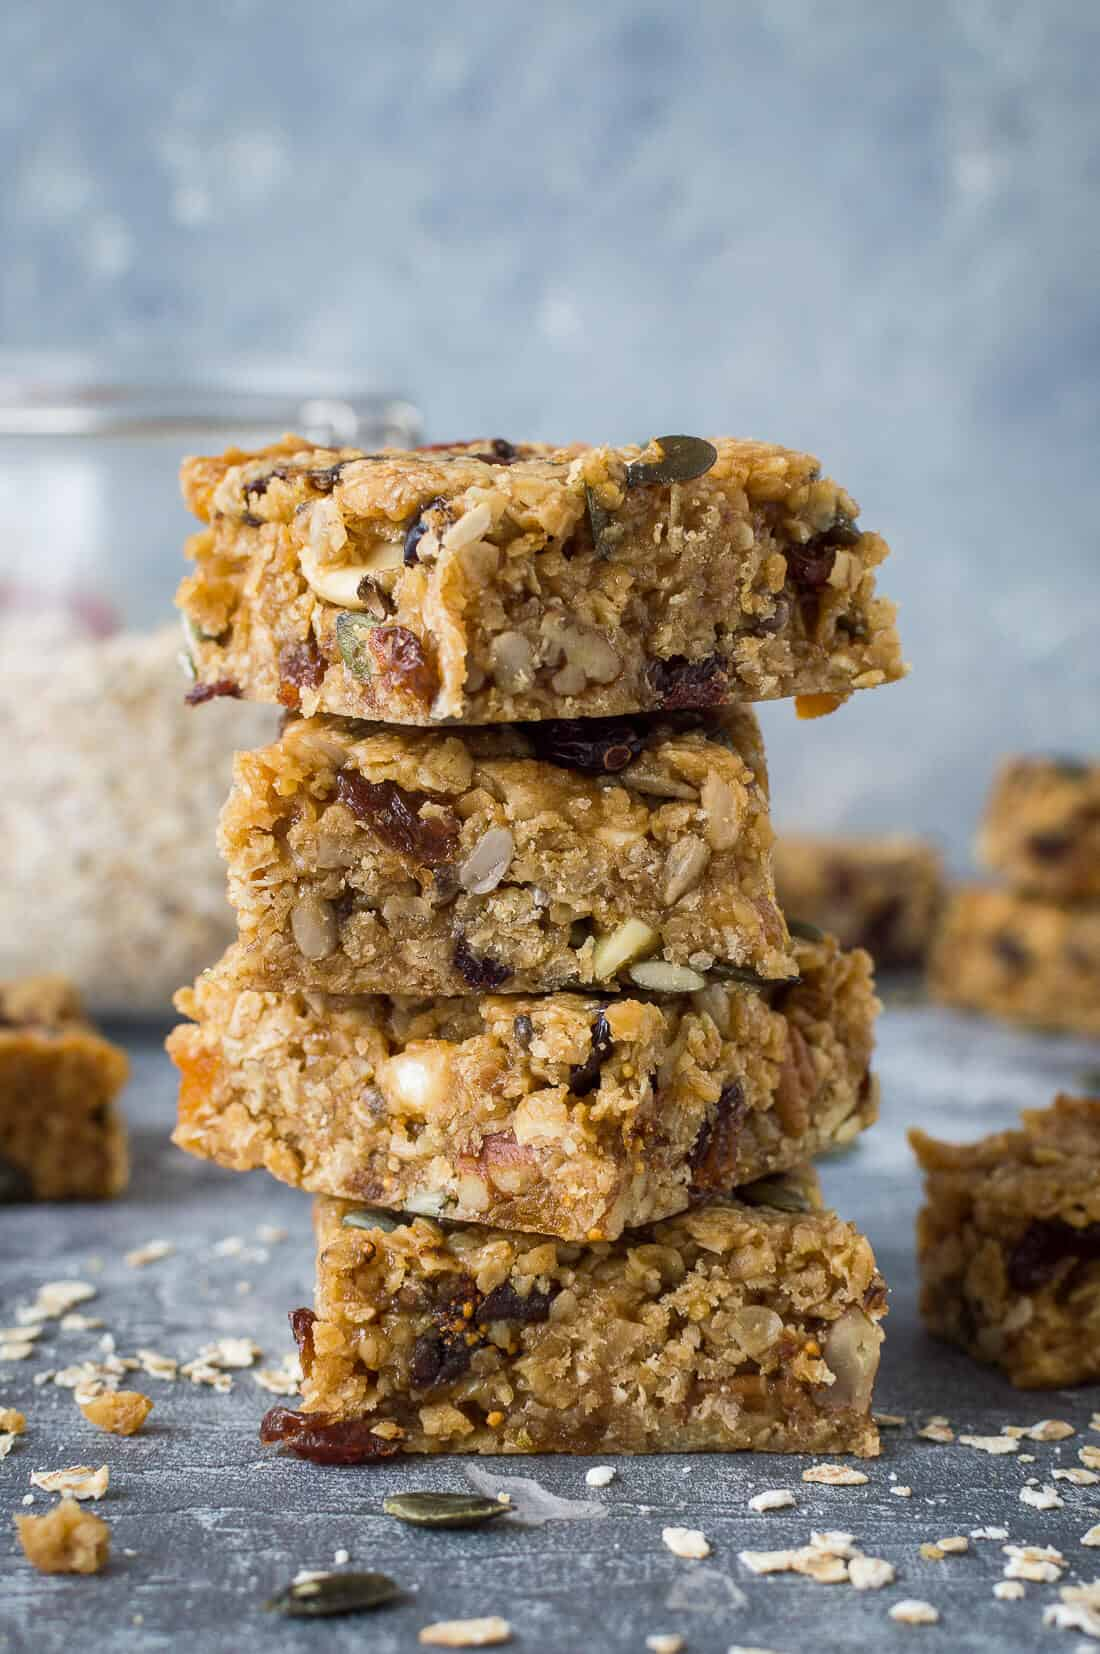 A stack of vegan fruit and nut flapjacks filled with dried fruits, nuts and seeds.